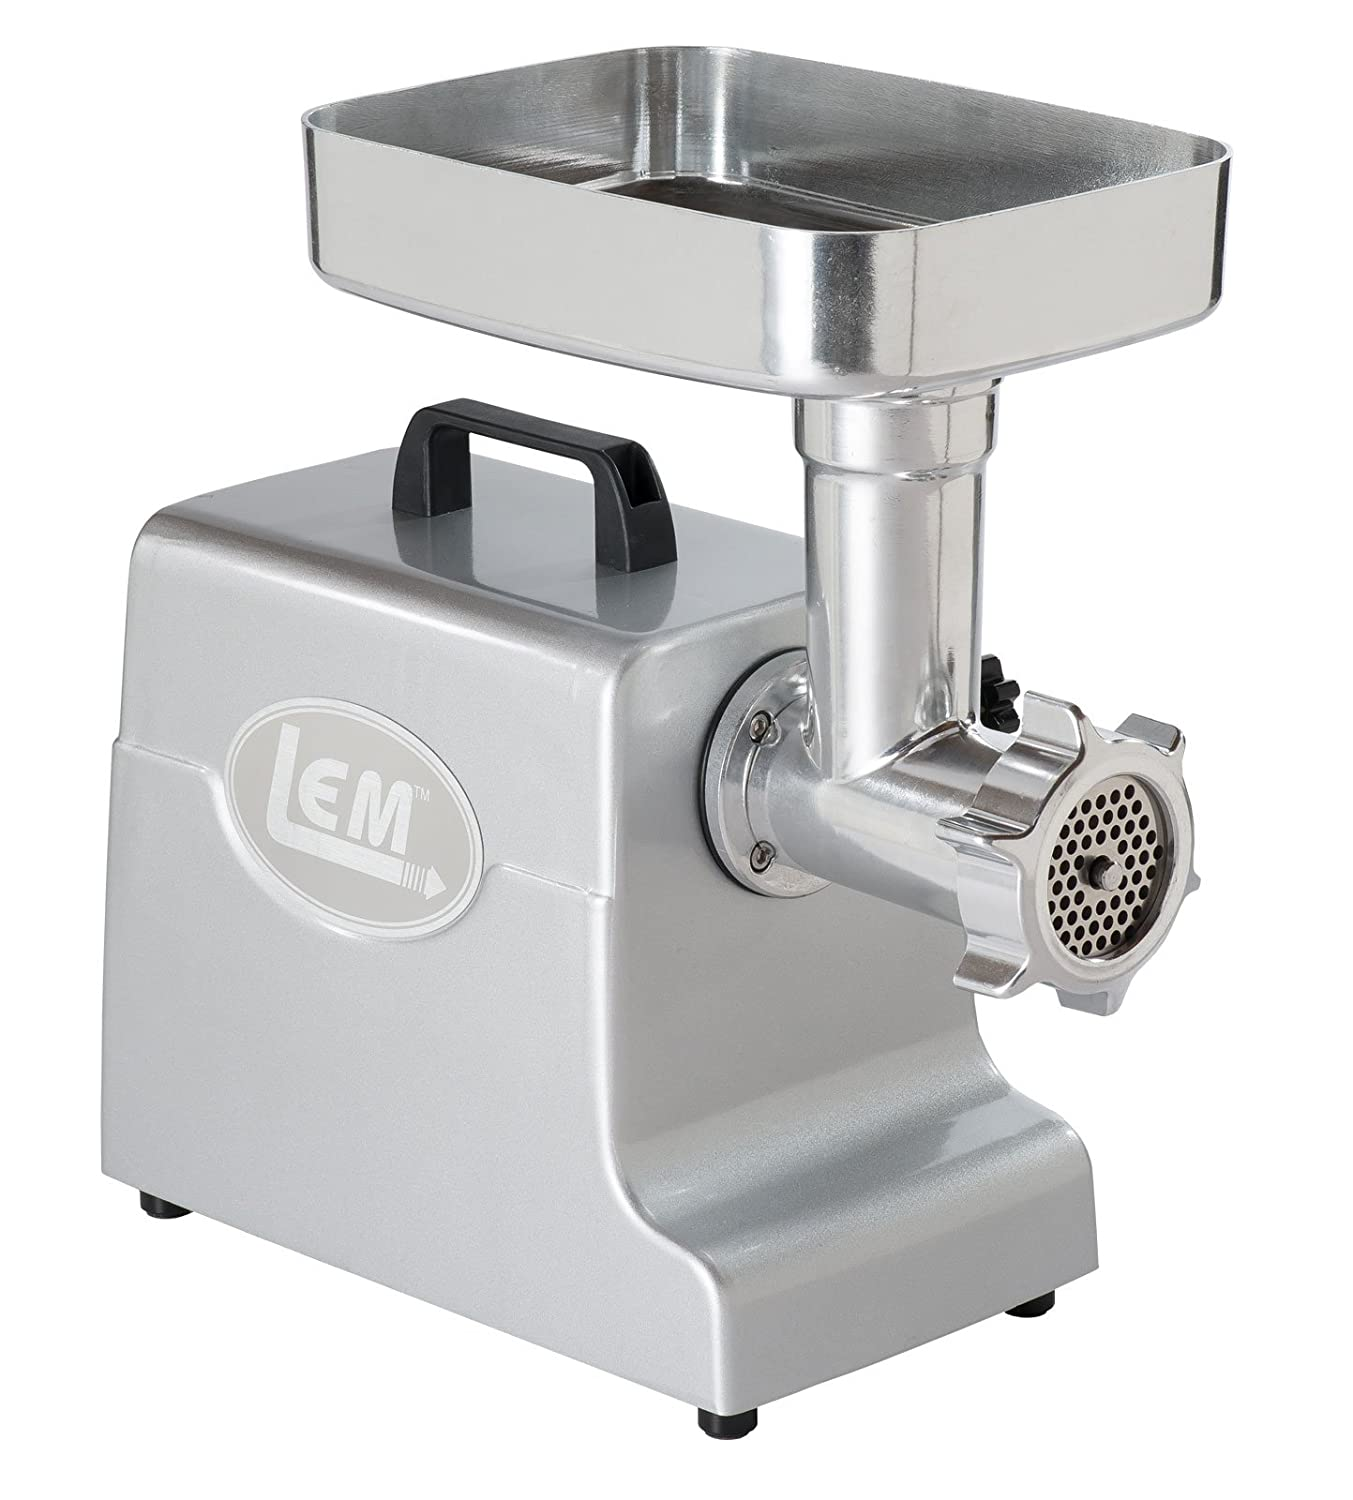 LEM Mighty Bite Meat Grinder